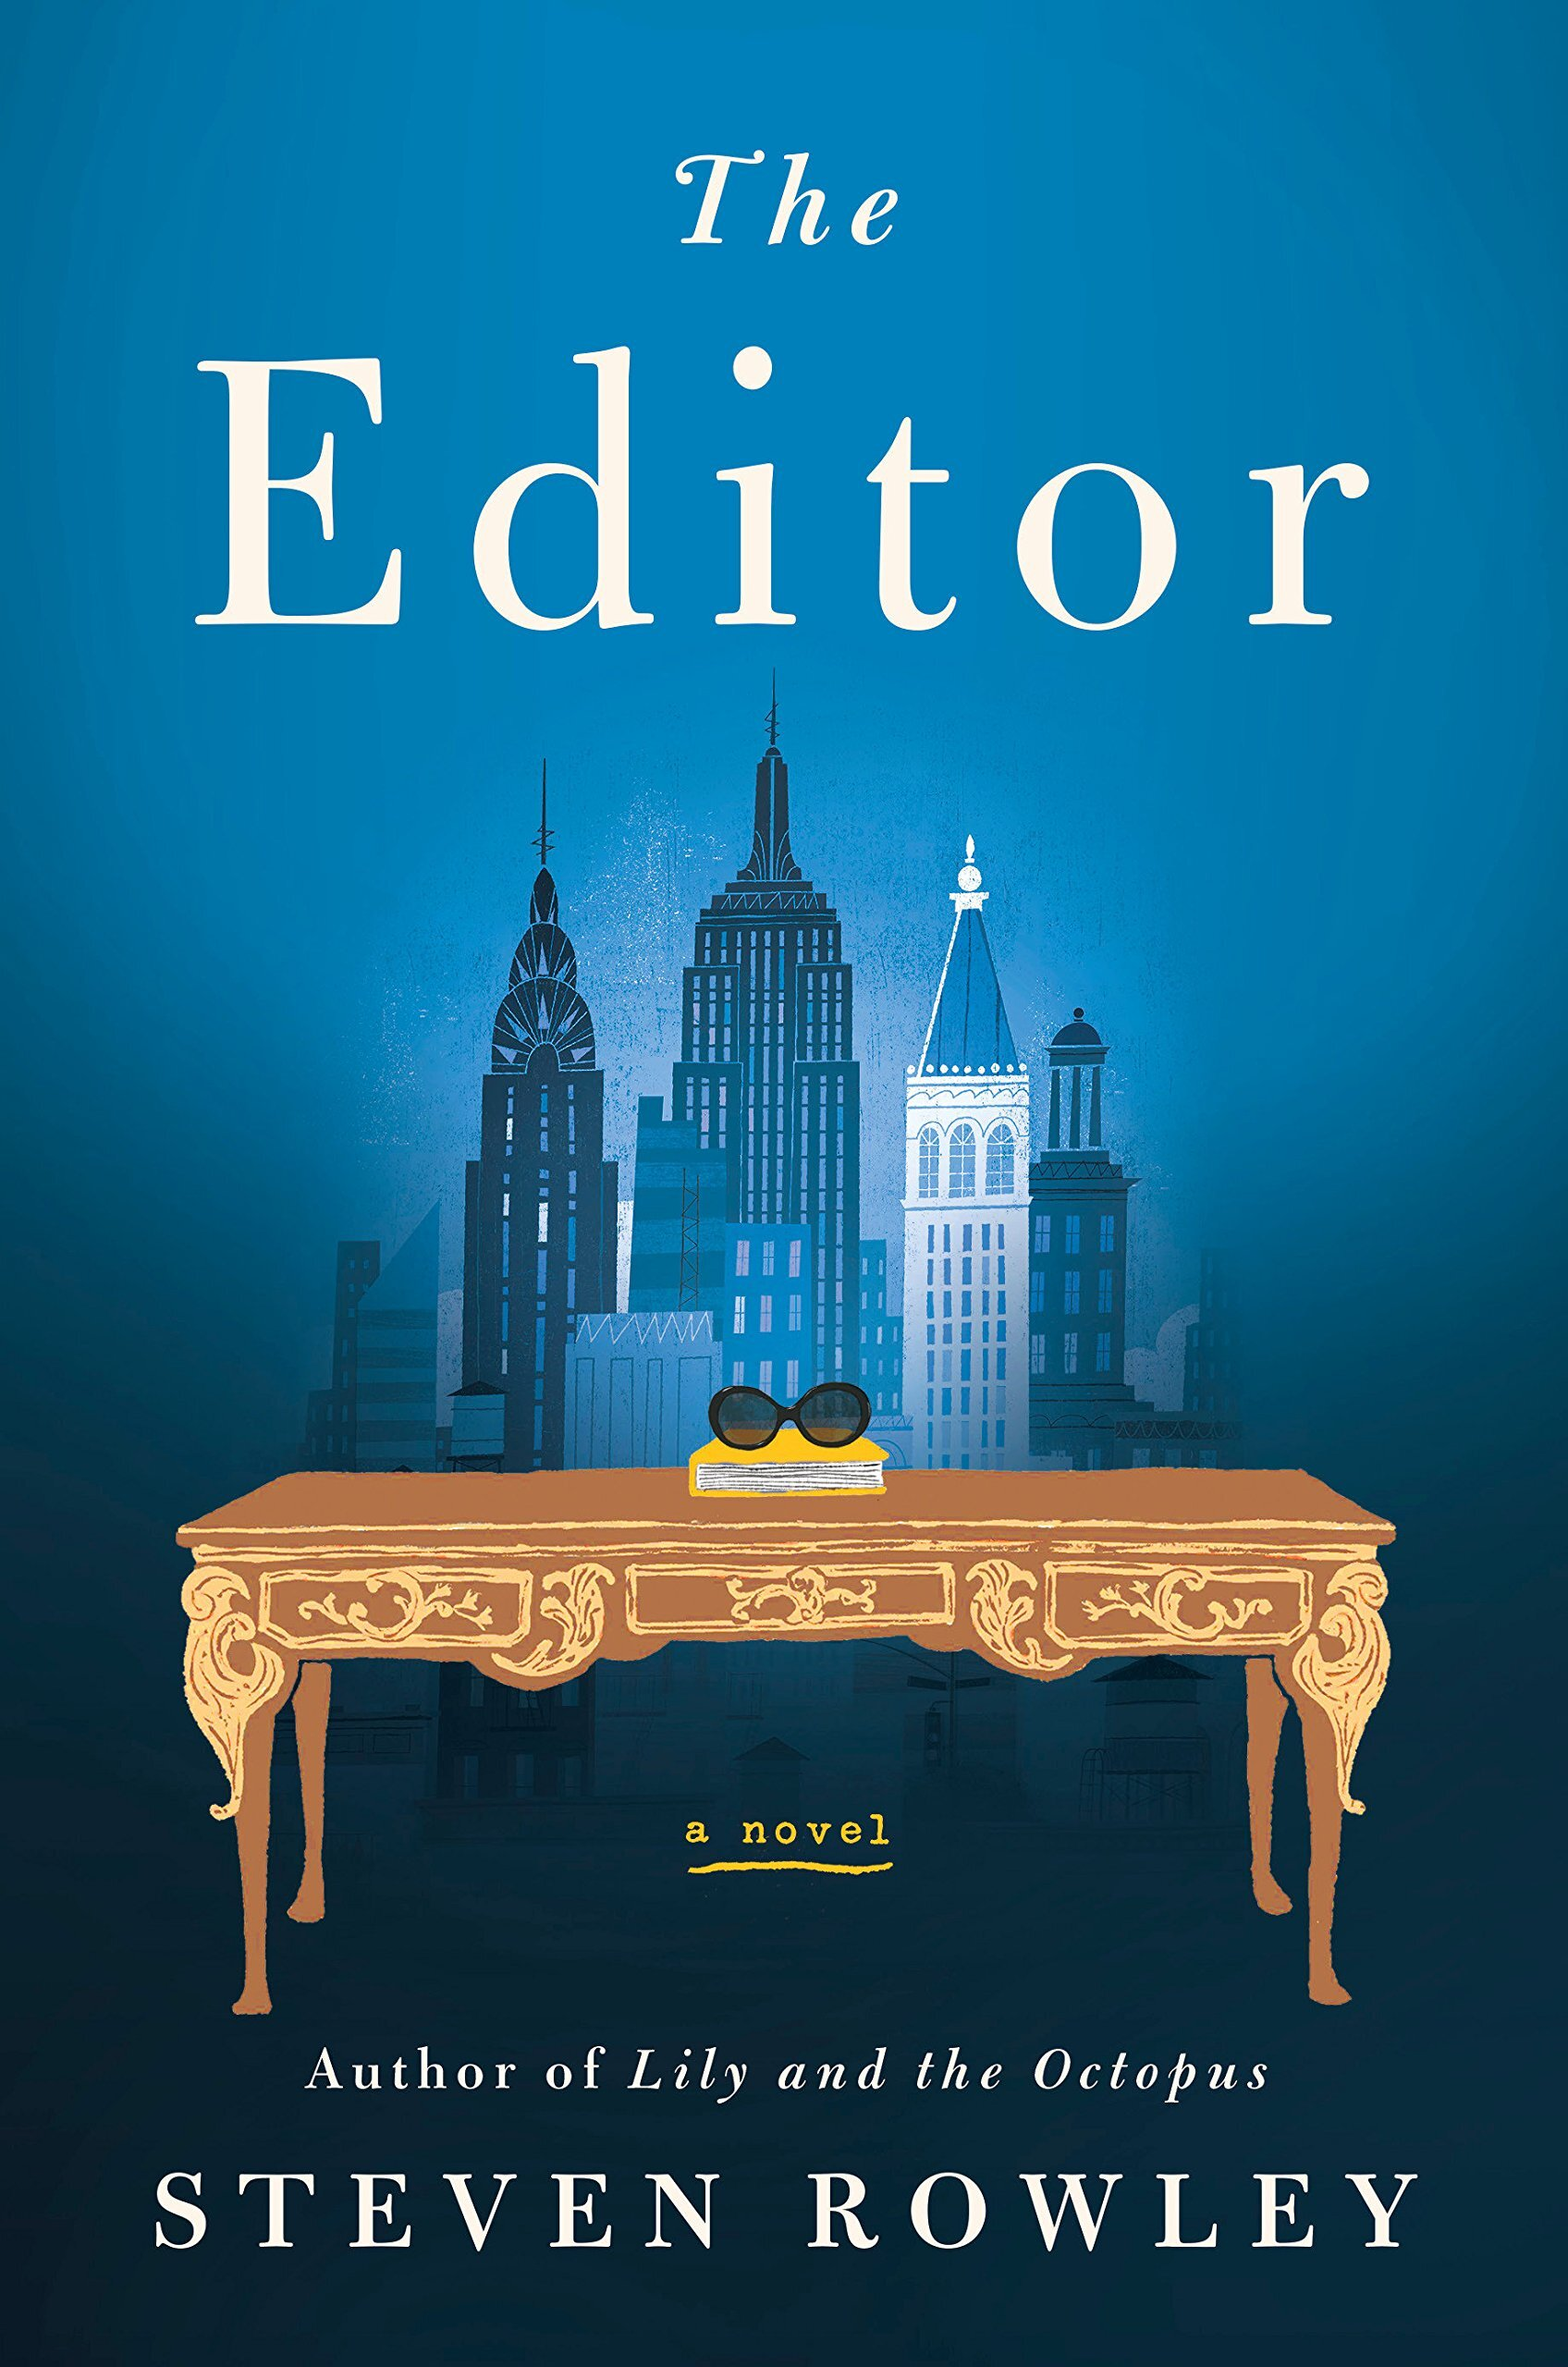 THE EDITOR by Stephen Rowley